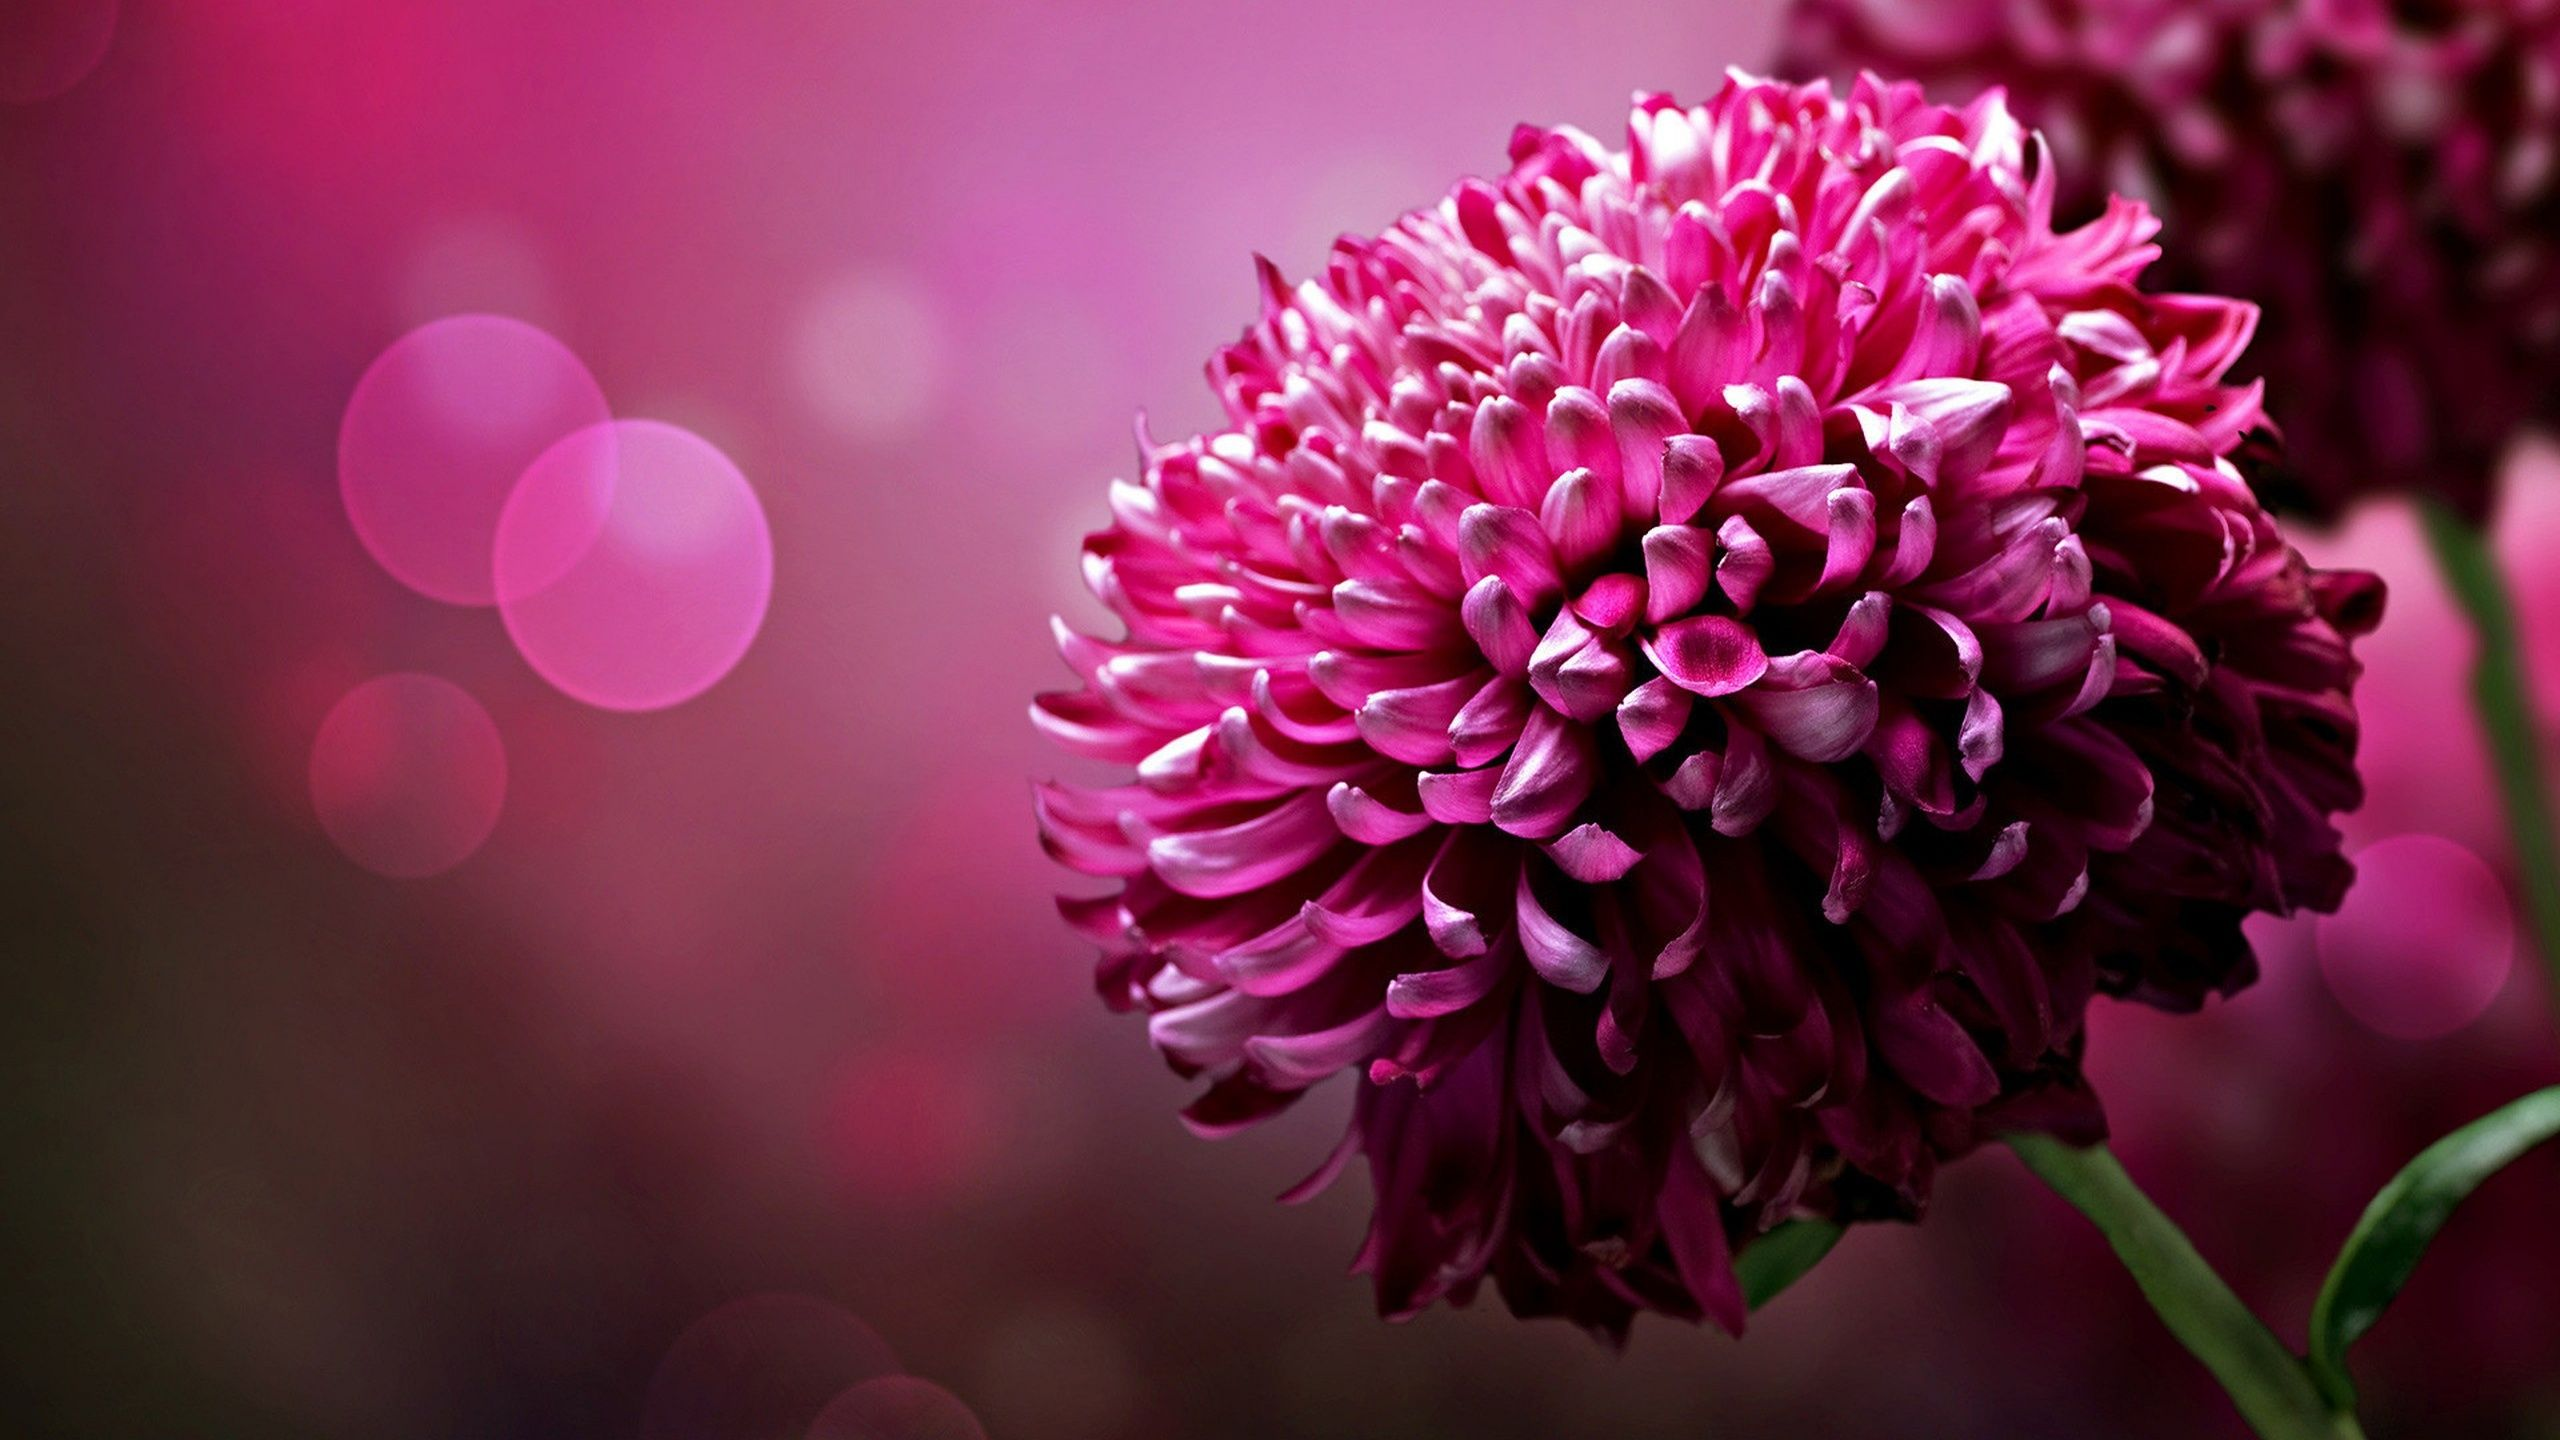 Flower Wallpapers Pink High Quality Resolution Purple Flowers Wallpaper Flower Desktop Wallpaper Beautiful Flowers Images